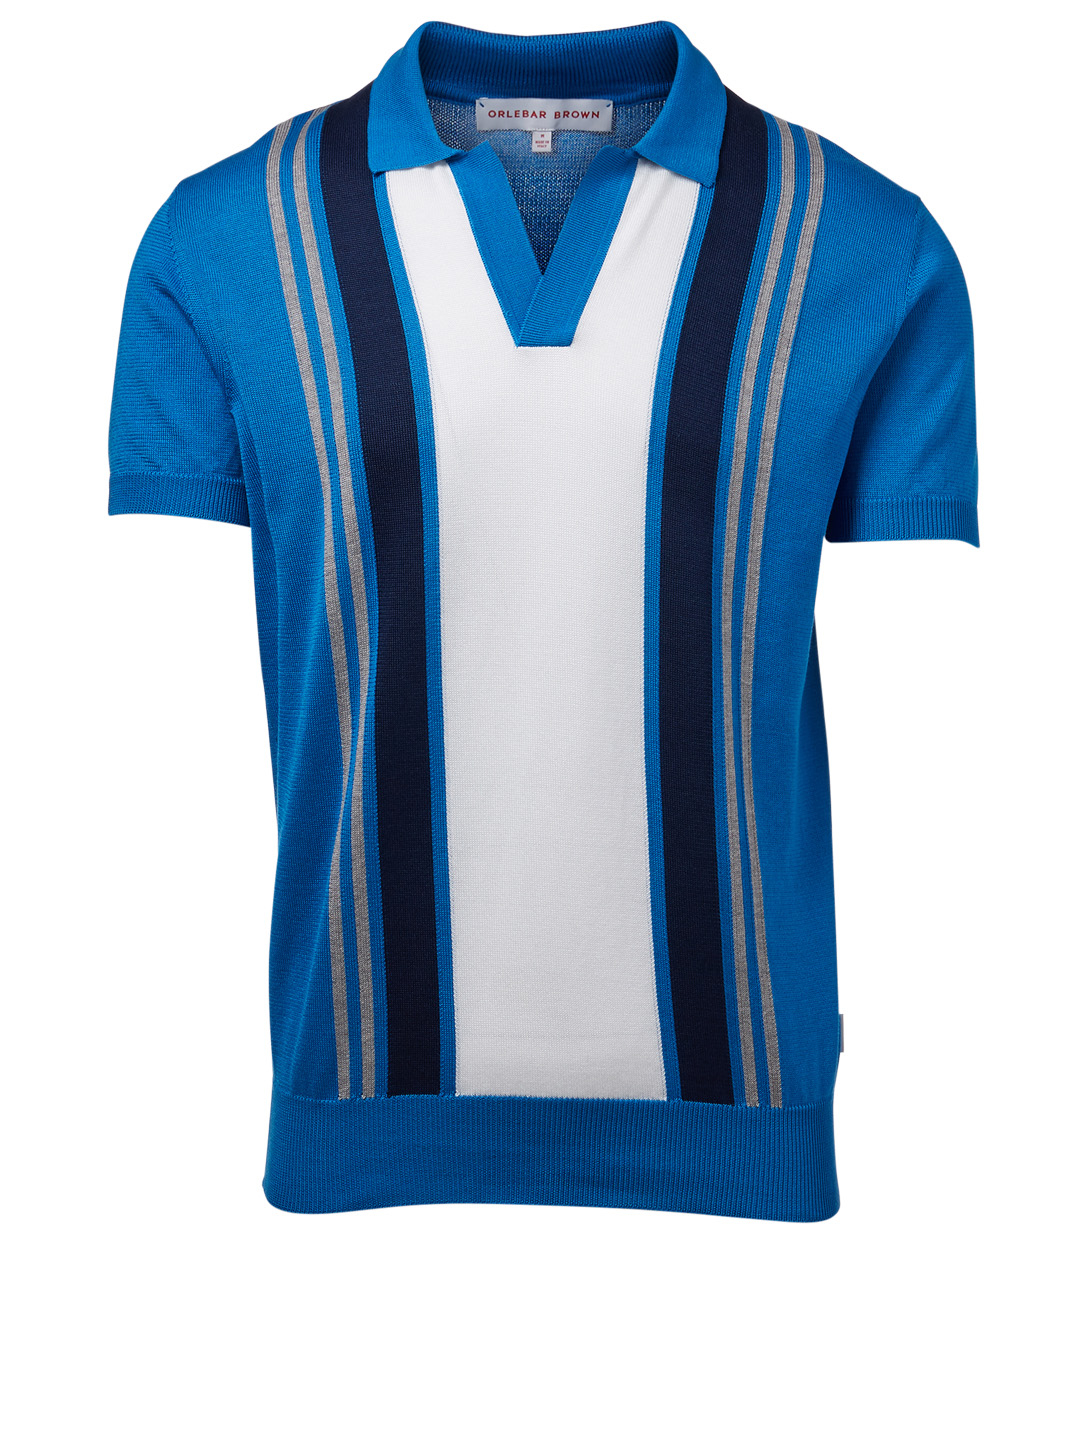 ORLEBAR BROWN Horton Resort Polo Shirt With Stripes Men's Blue